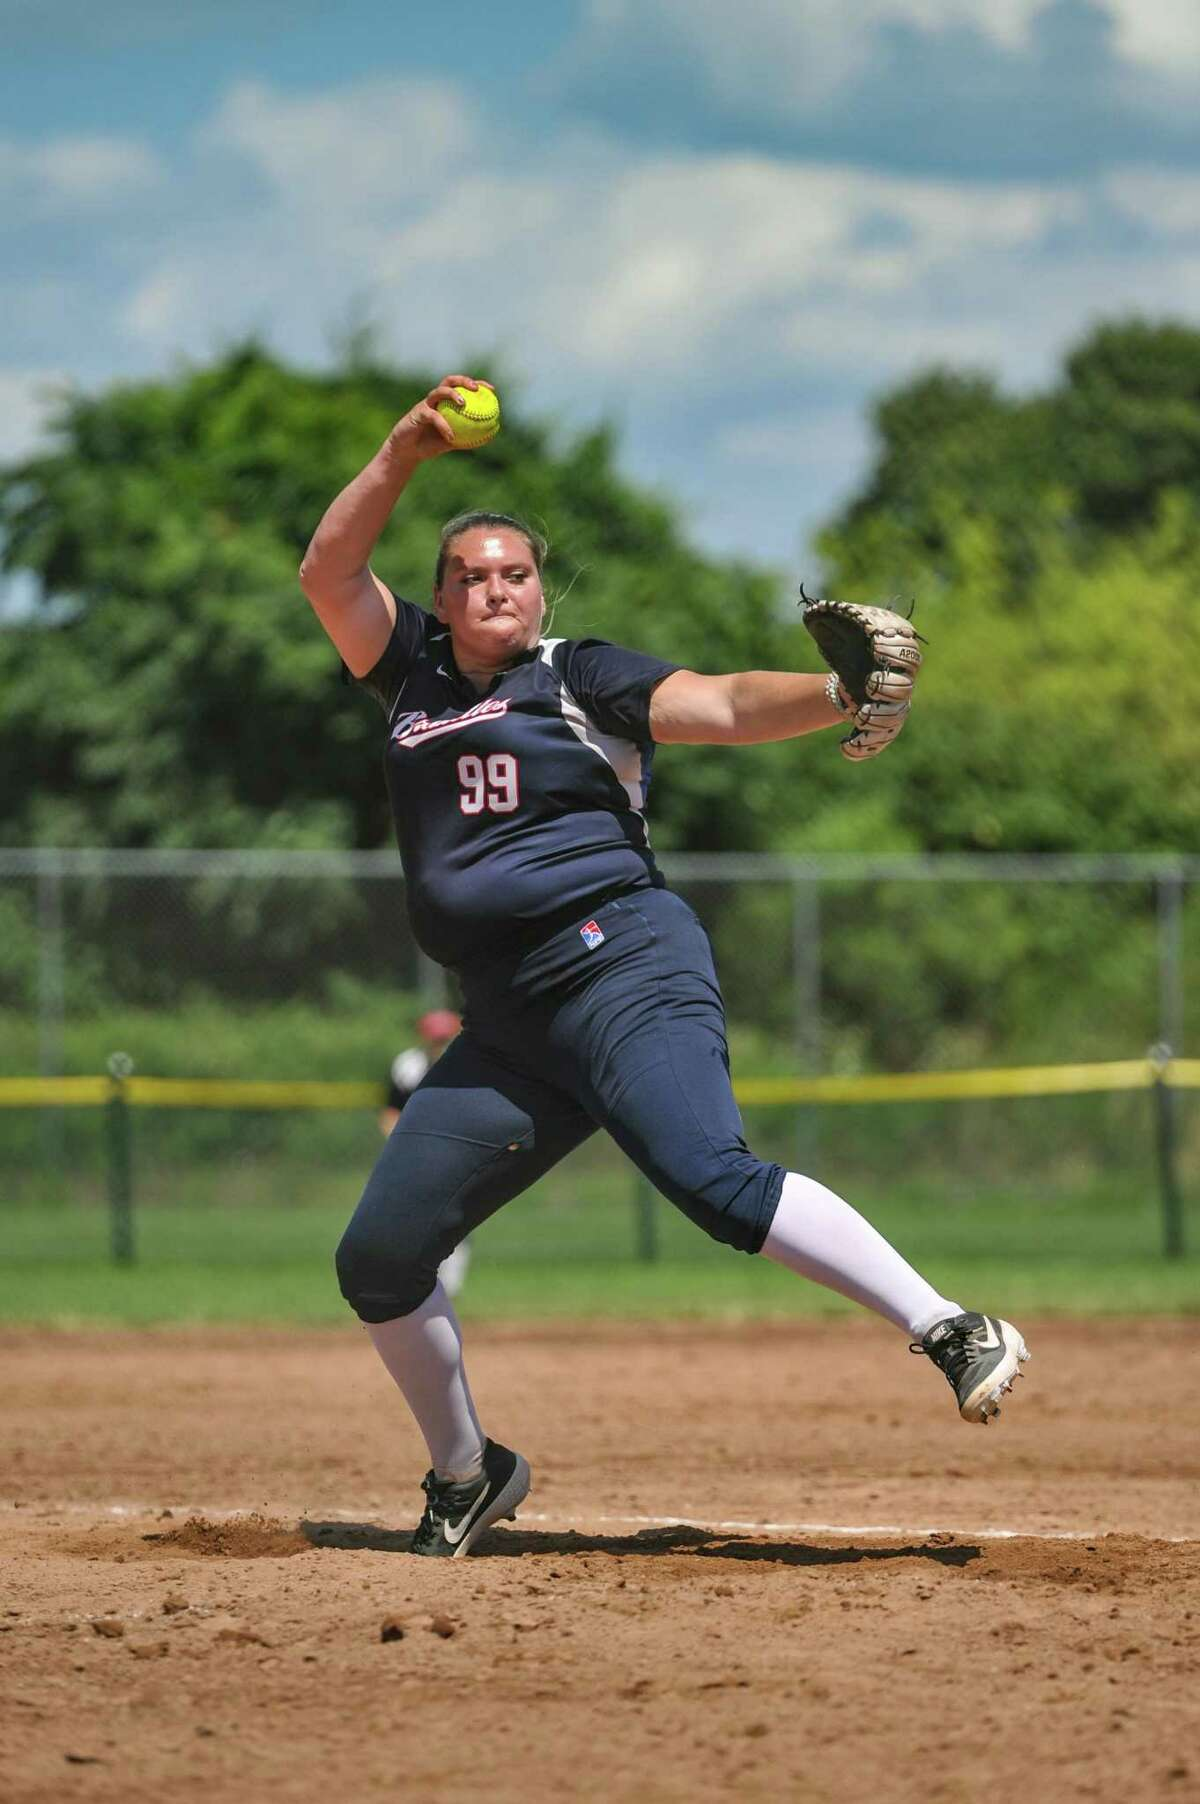 Pitcher Kaysee Talcik (99) of the Stratford Brakettes delivers a pitch during the Women's Major Fast Pitch National Championship game against the Lyon (PA) Spirit played on Sunday August 4, 2019 at Deluca Hall of Fame field in Stratford, CT.